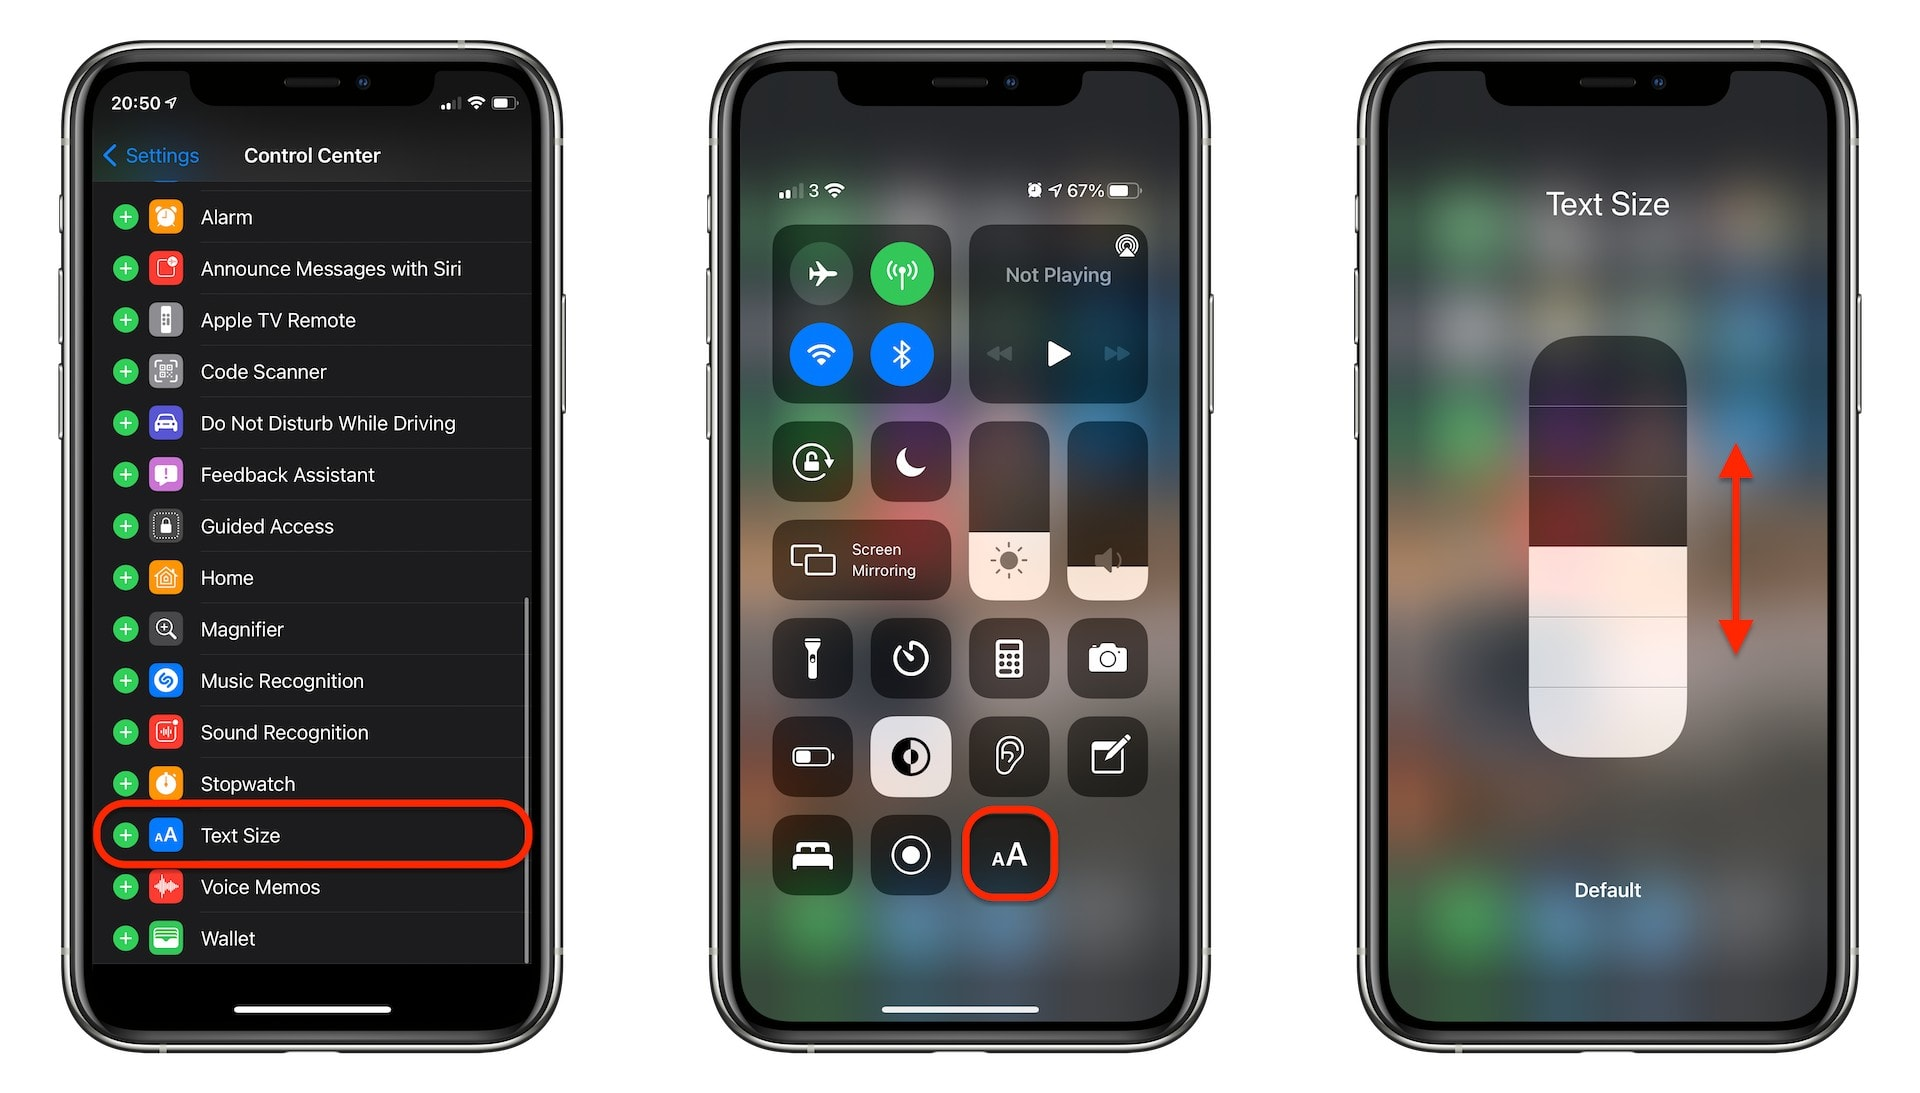 Switch system text sizes on the fly using Control Center